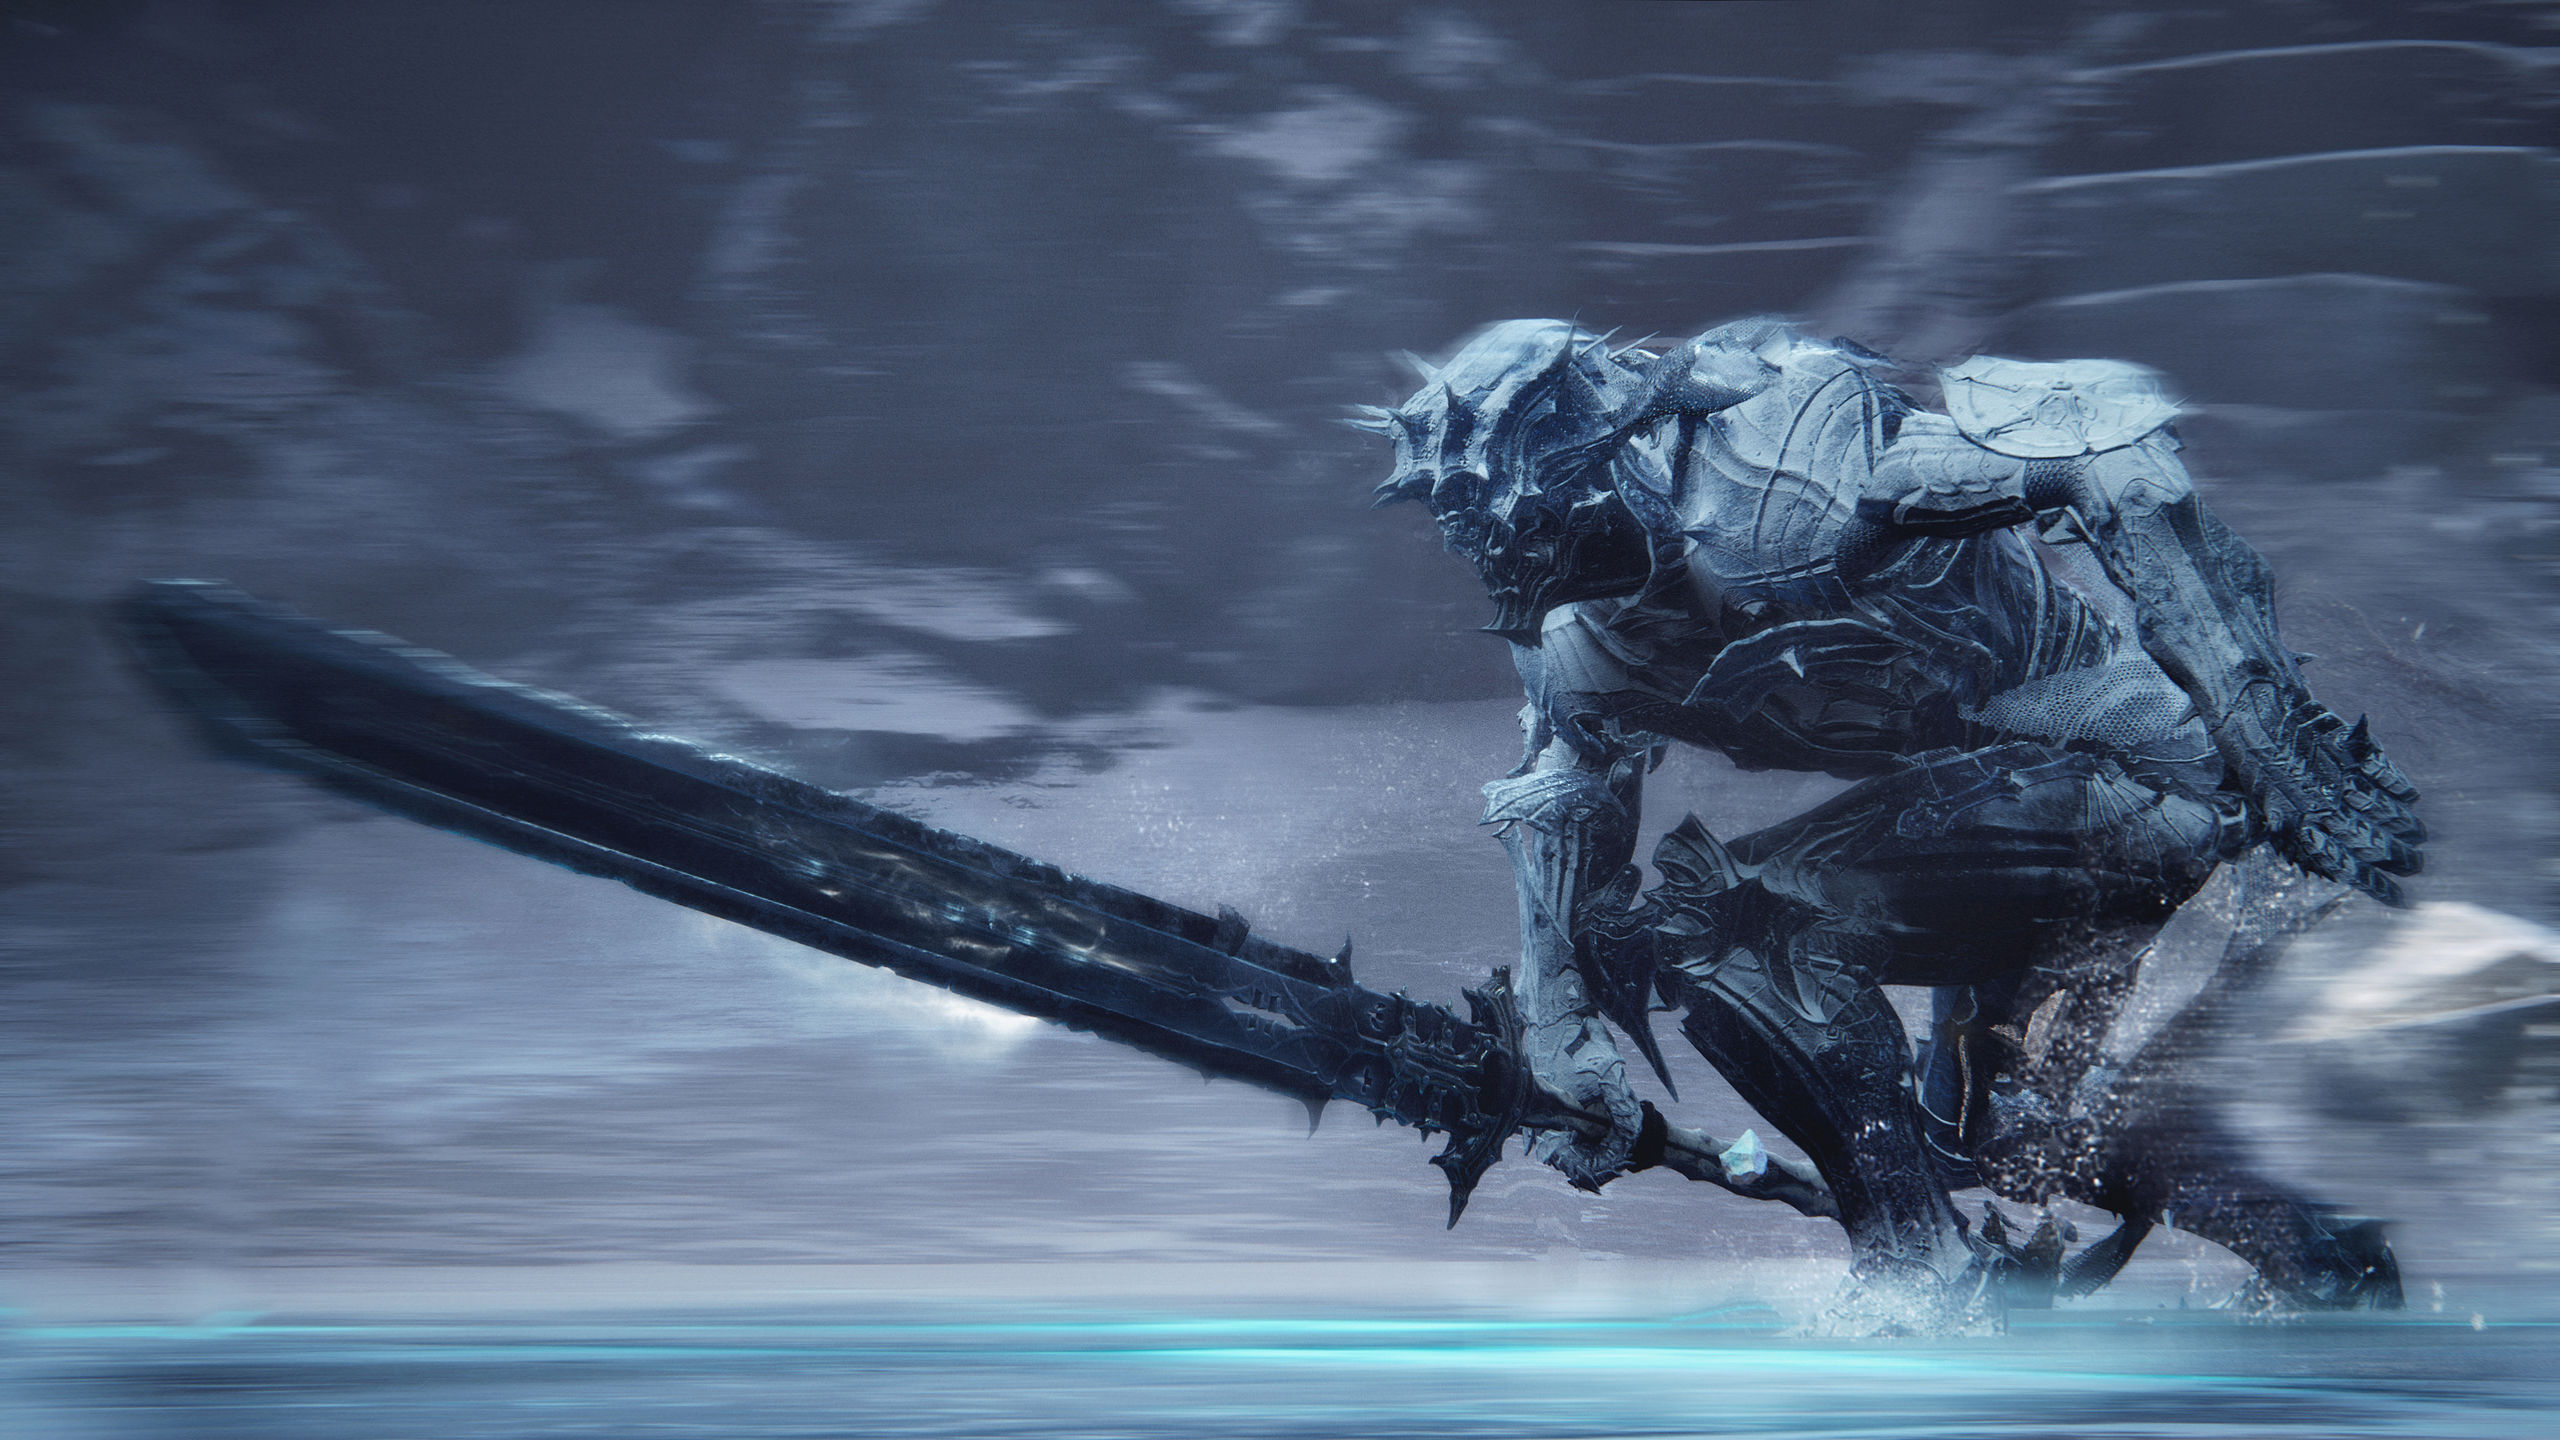 Screenshot From Mortal Shell Featuring An Armored Figure With A Huge Sword